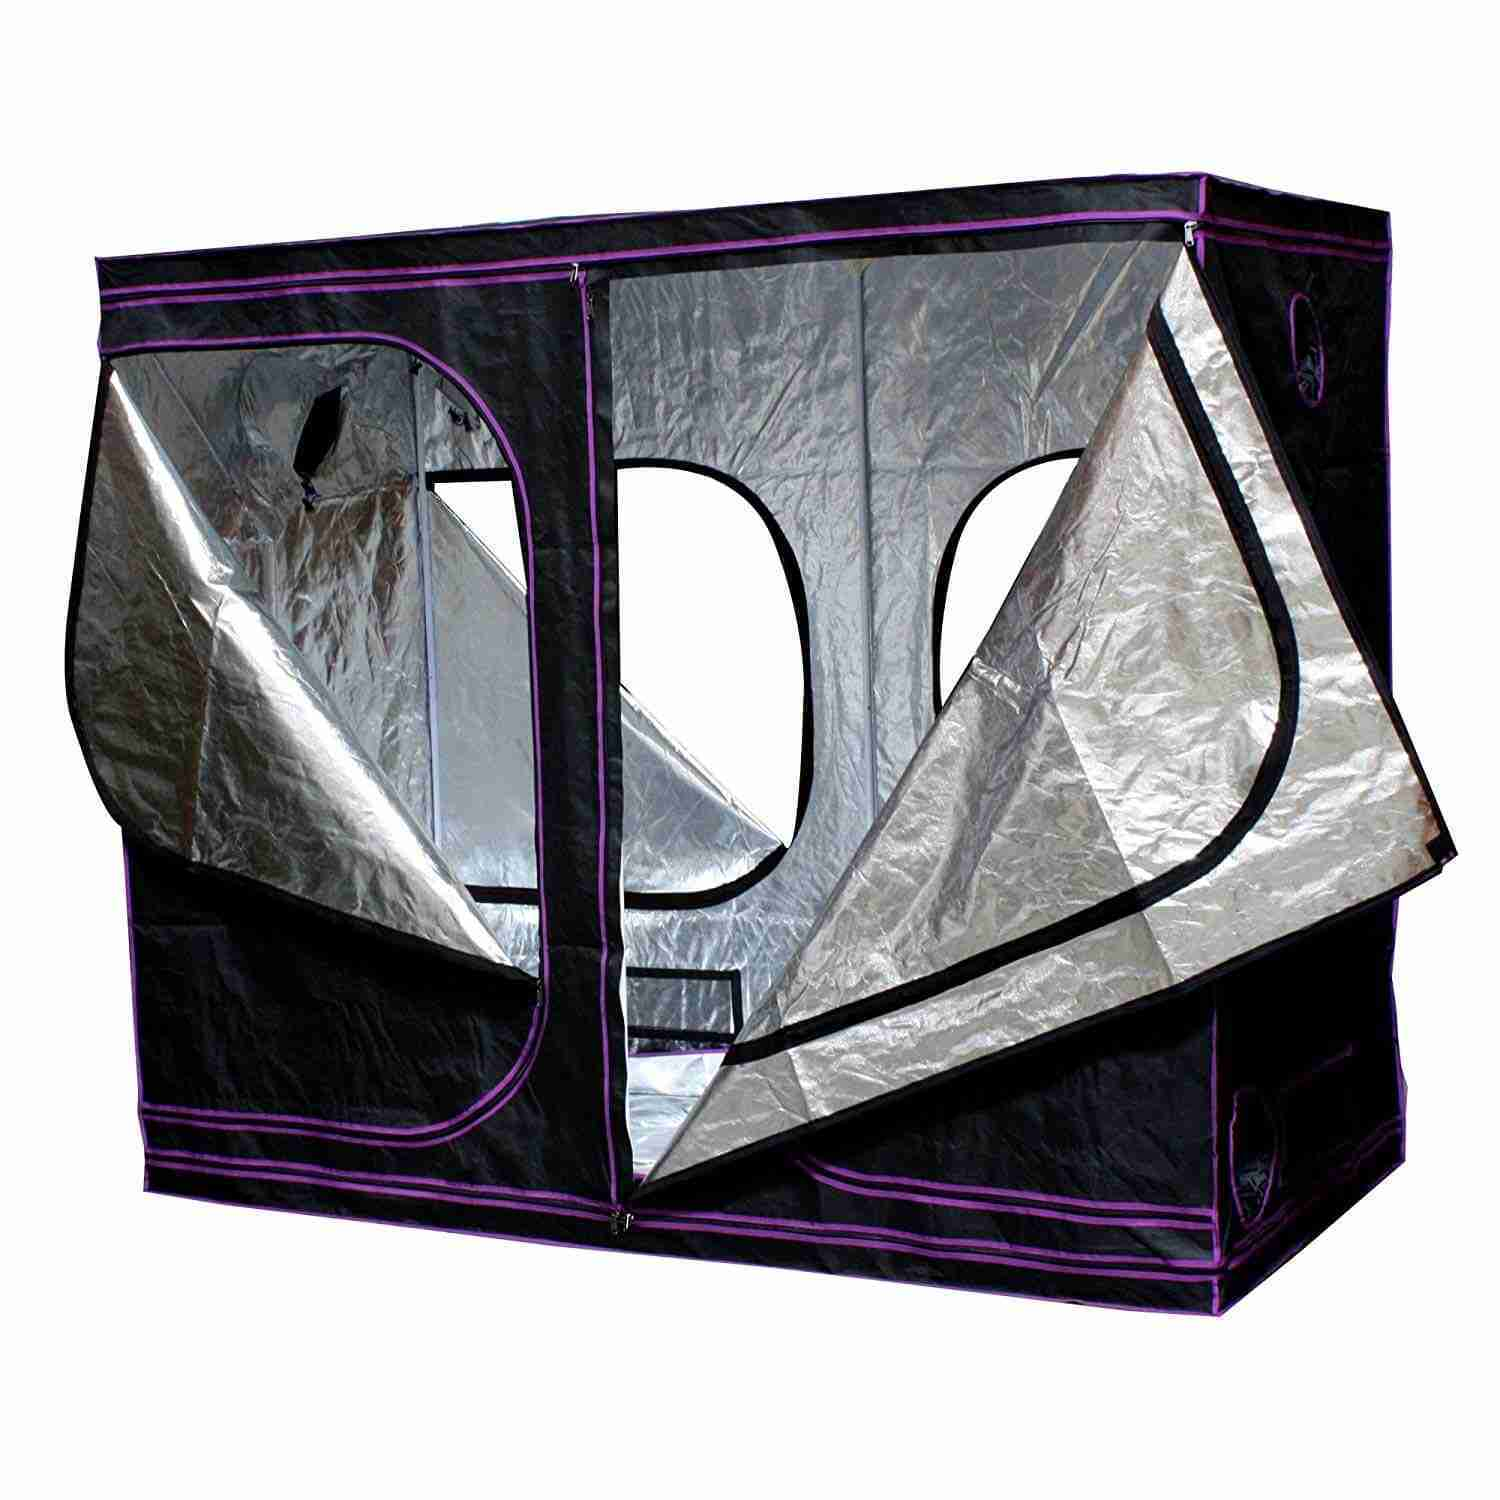 Apollo Horticulture - Mylar Hydroponic Grow Tent for Indoor Plant Growing